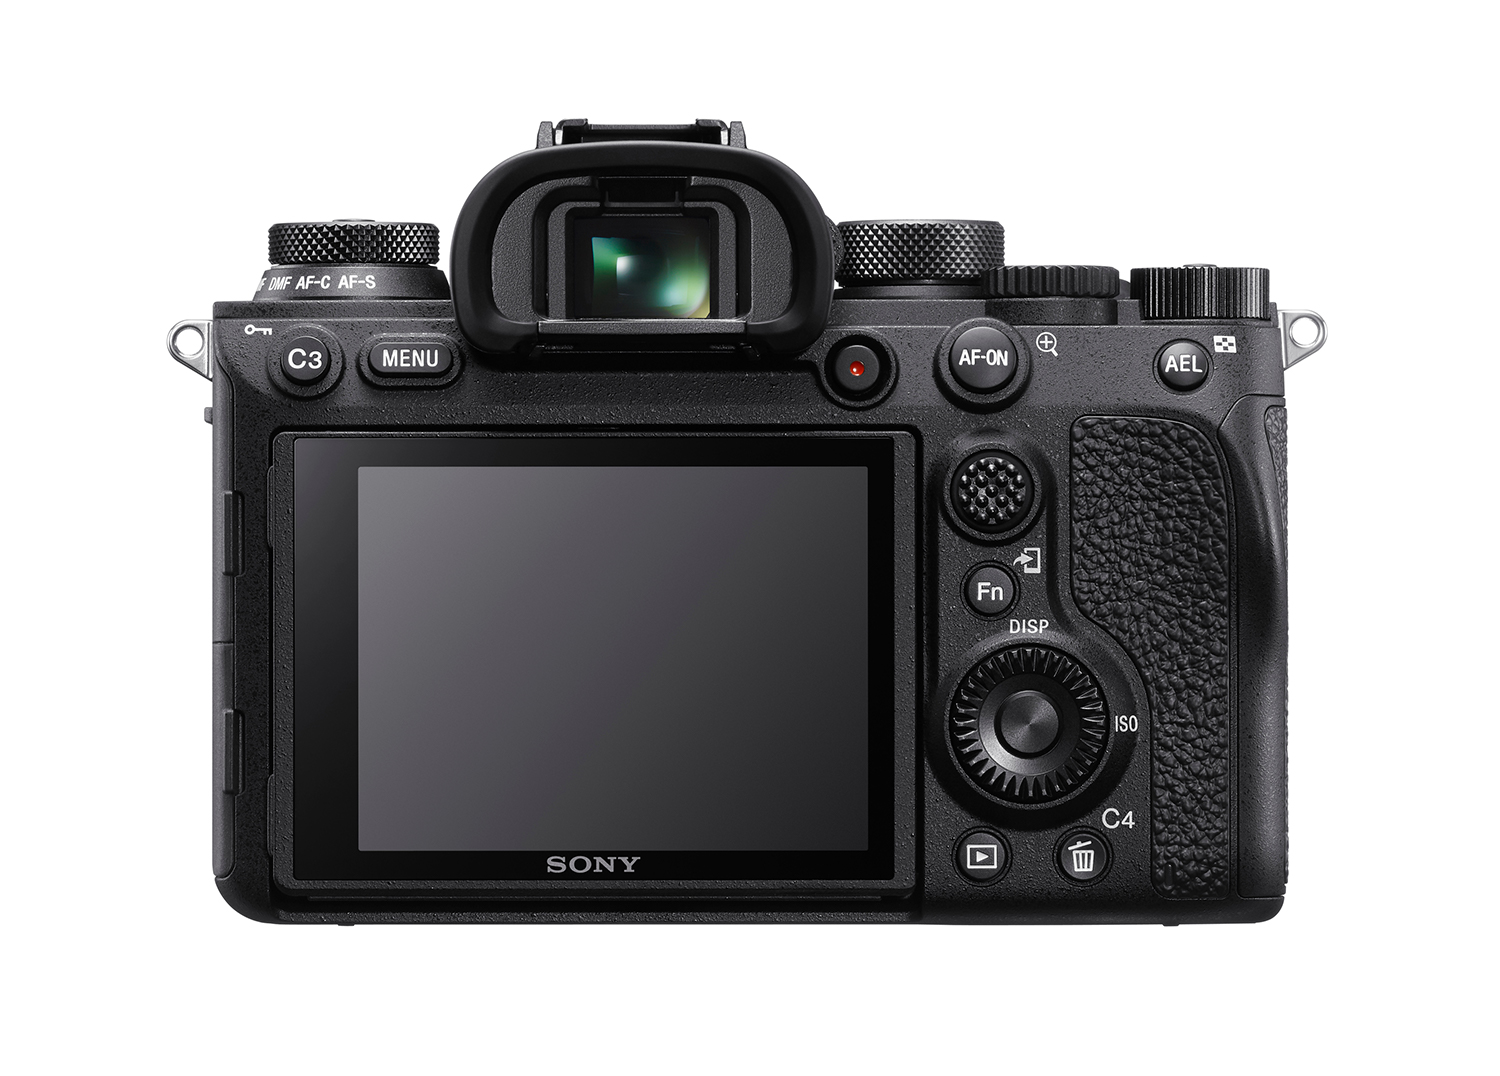 Rear view of the Sony A9II